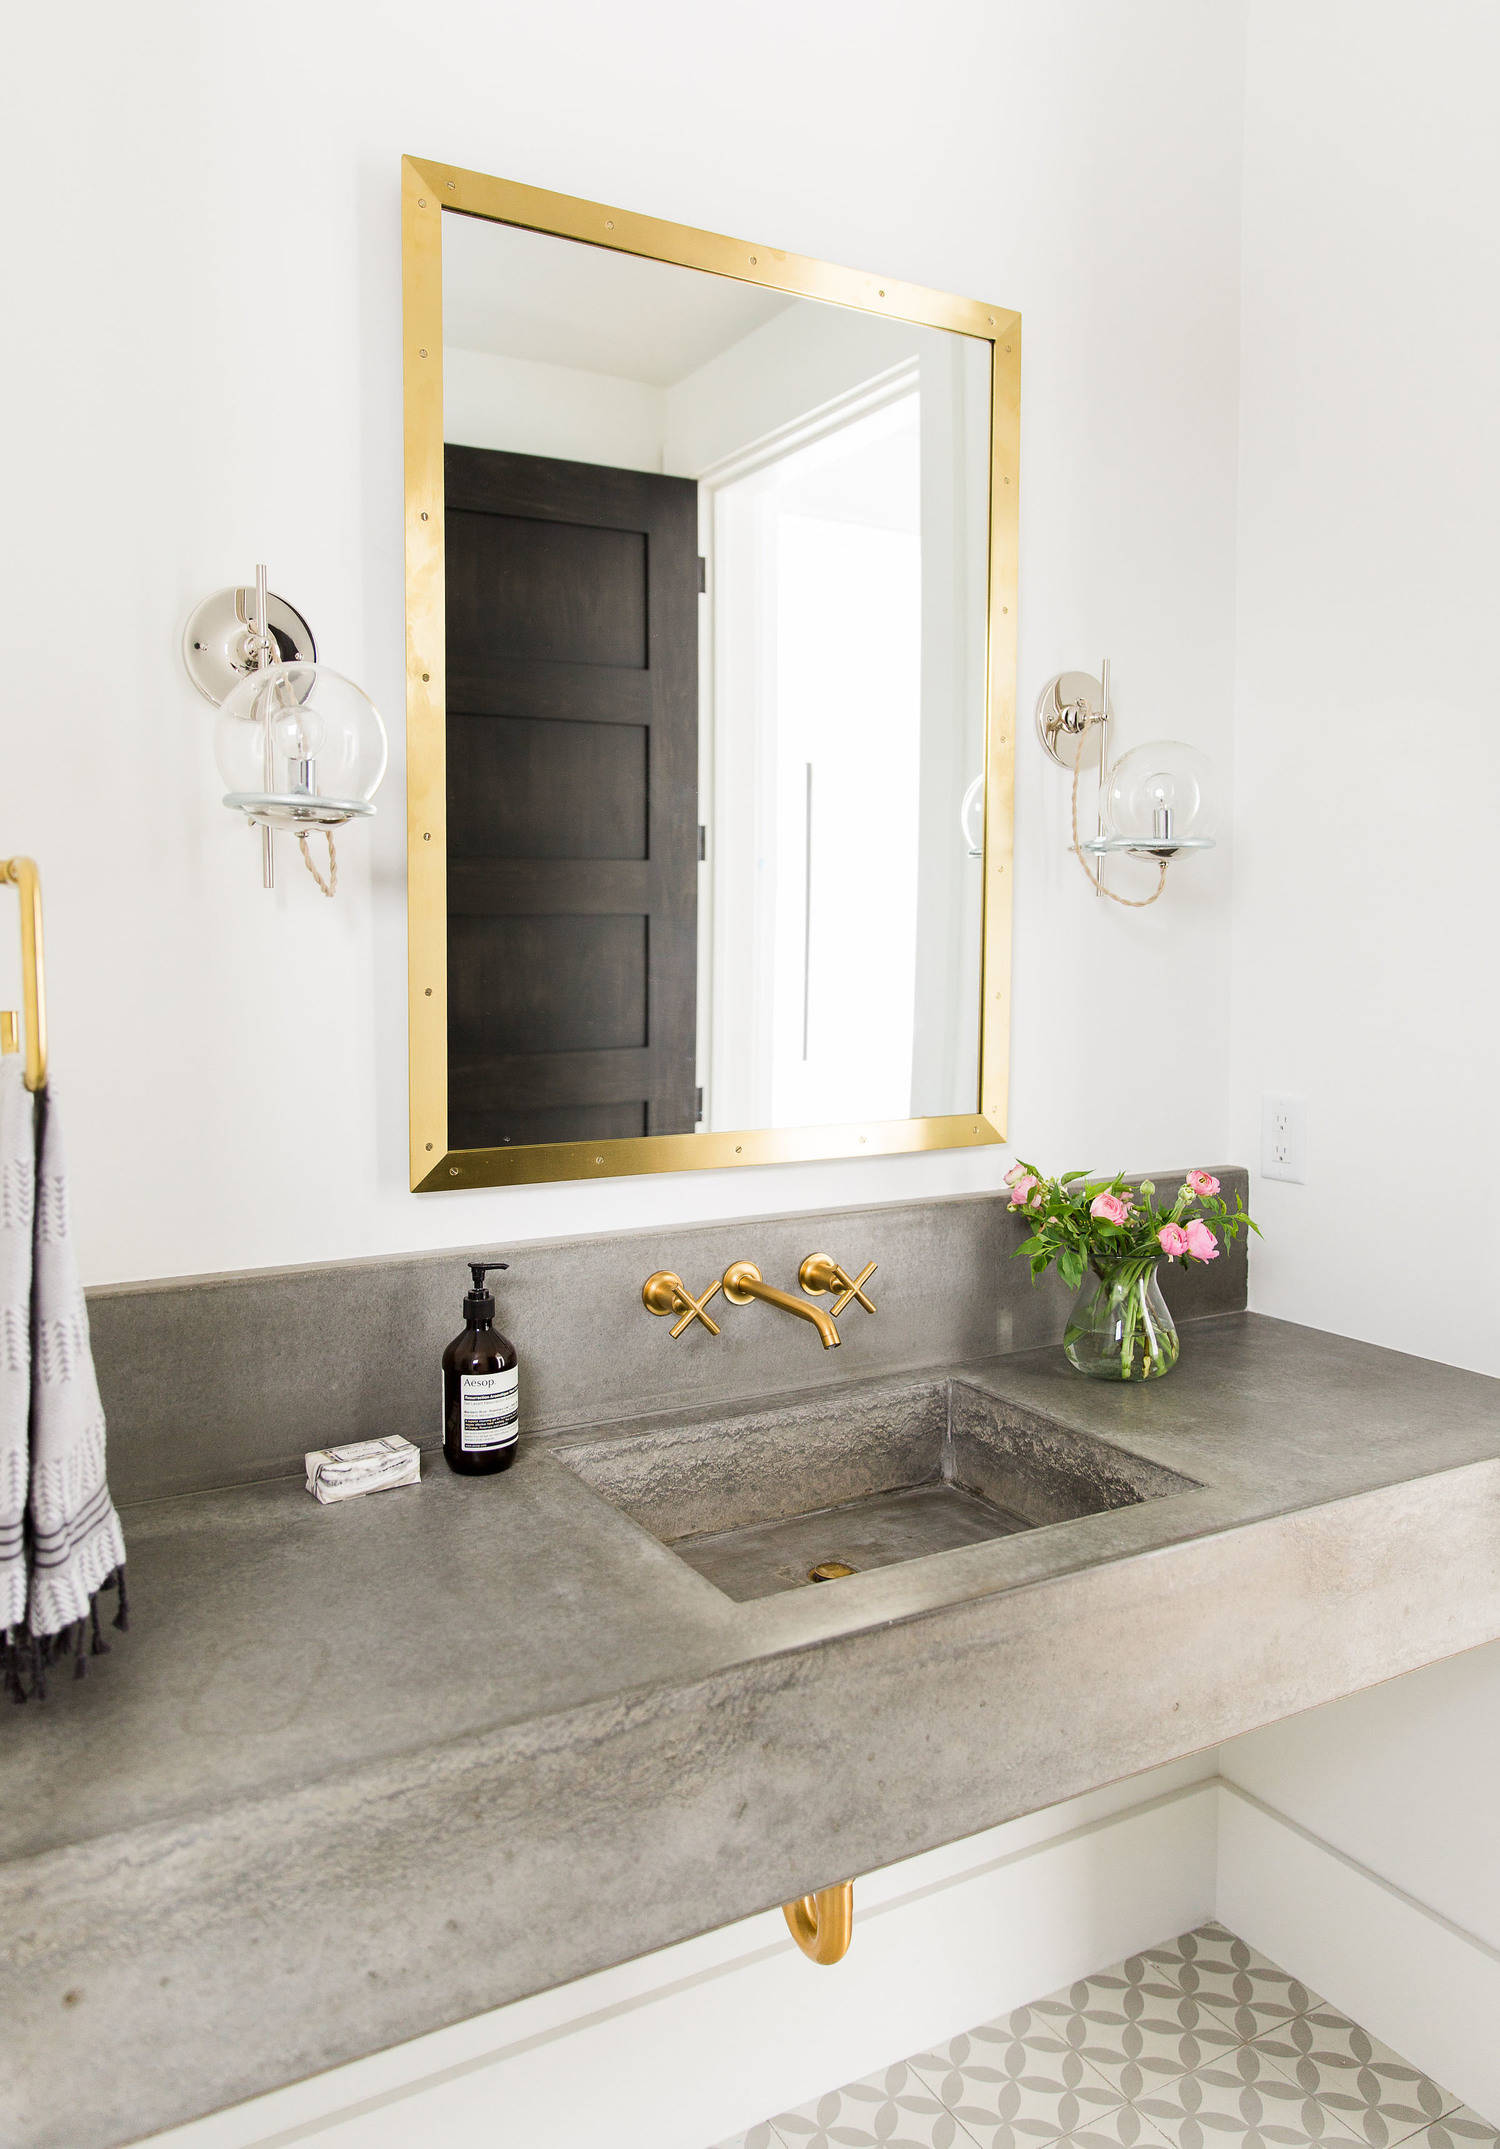 Transitional Powder Room Decorative Concrete Sink Vanity Solid Concrete With Gol Mirror Modern Contemporary Style Powder Room Stained Polished Indianapolis Concrete Artisans Shop Room Ideas